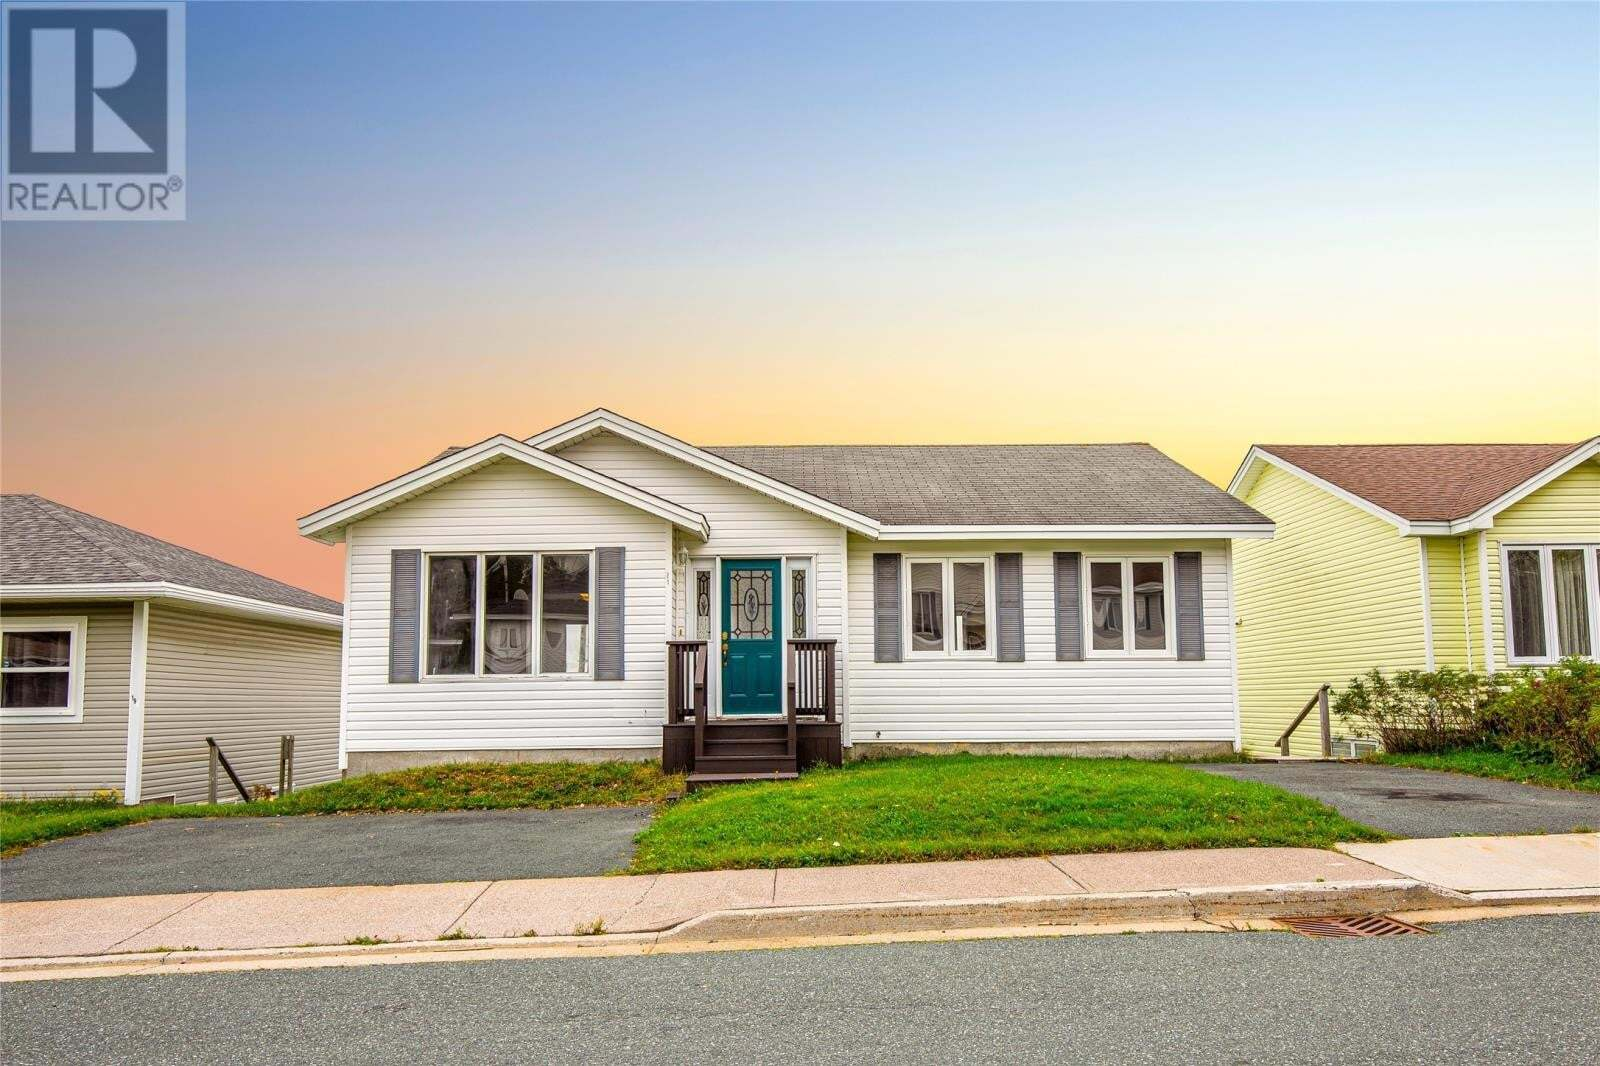 House for sale at 21 Gilmore St St. John's Newfoundland - MLS: 1221841